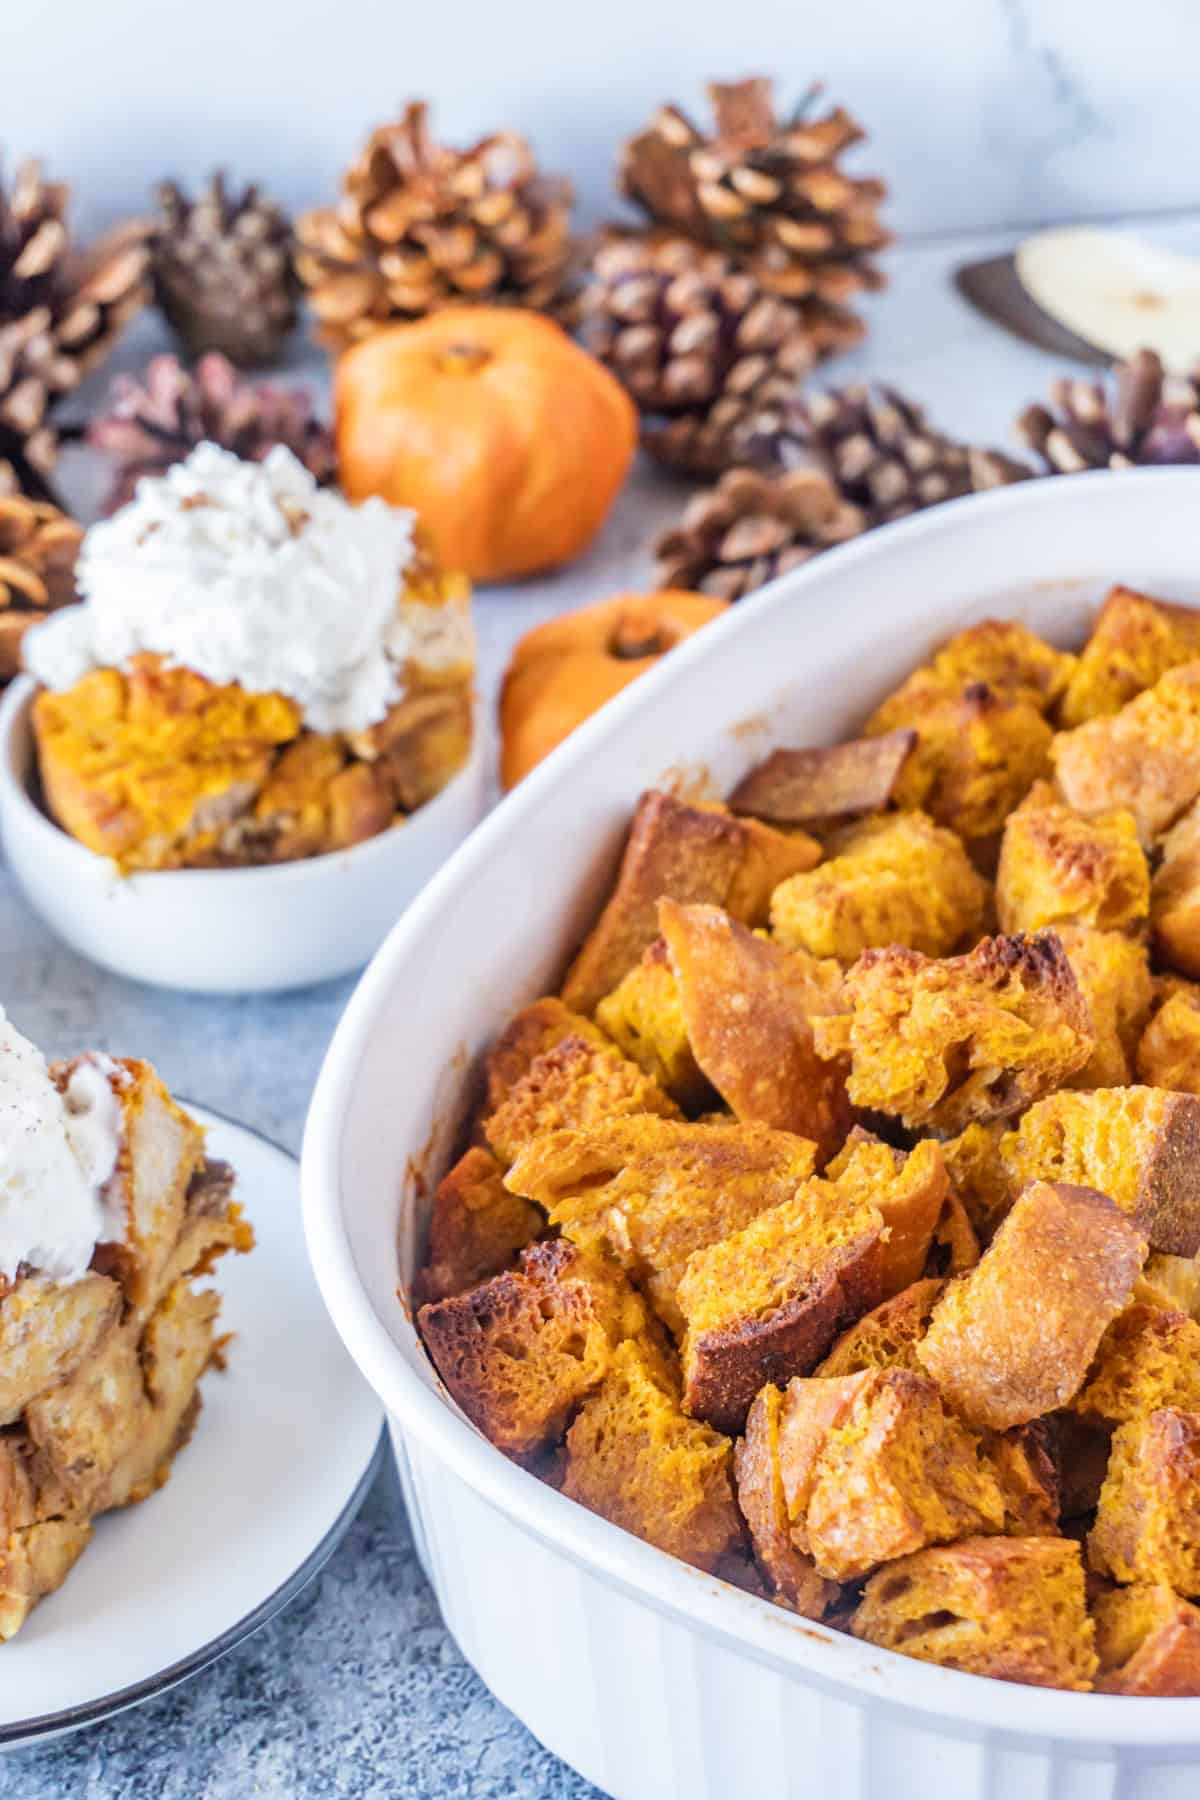 Pumpkin Bread pudding in dish- baked